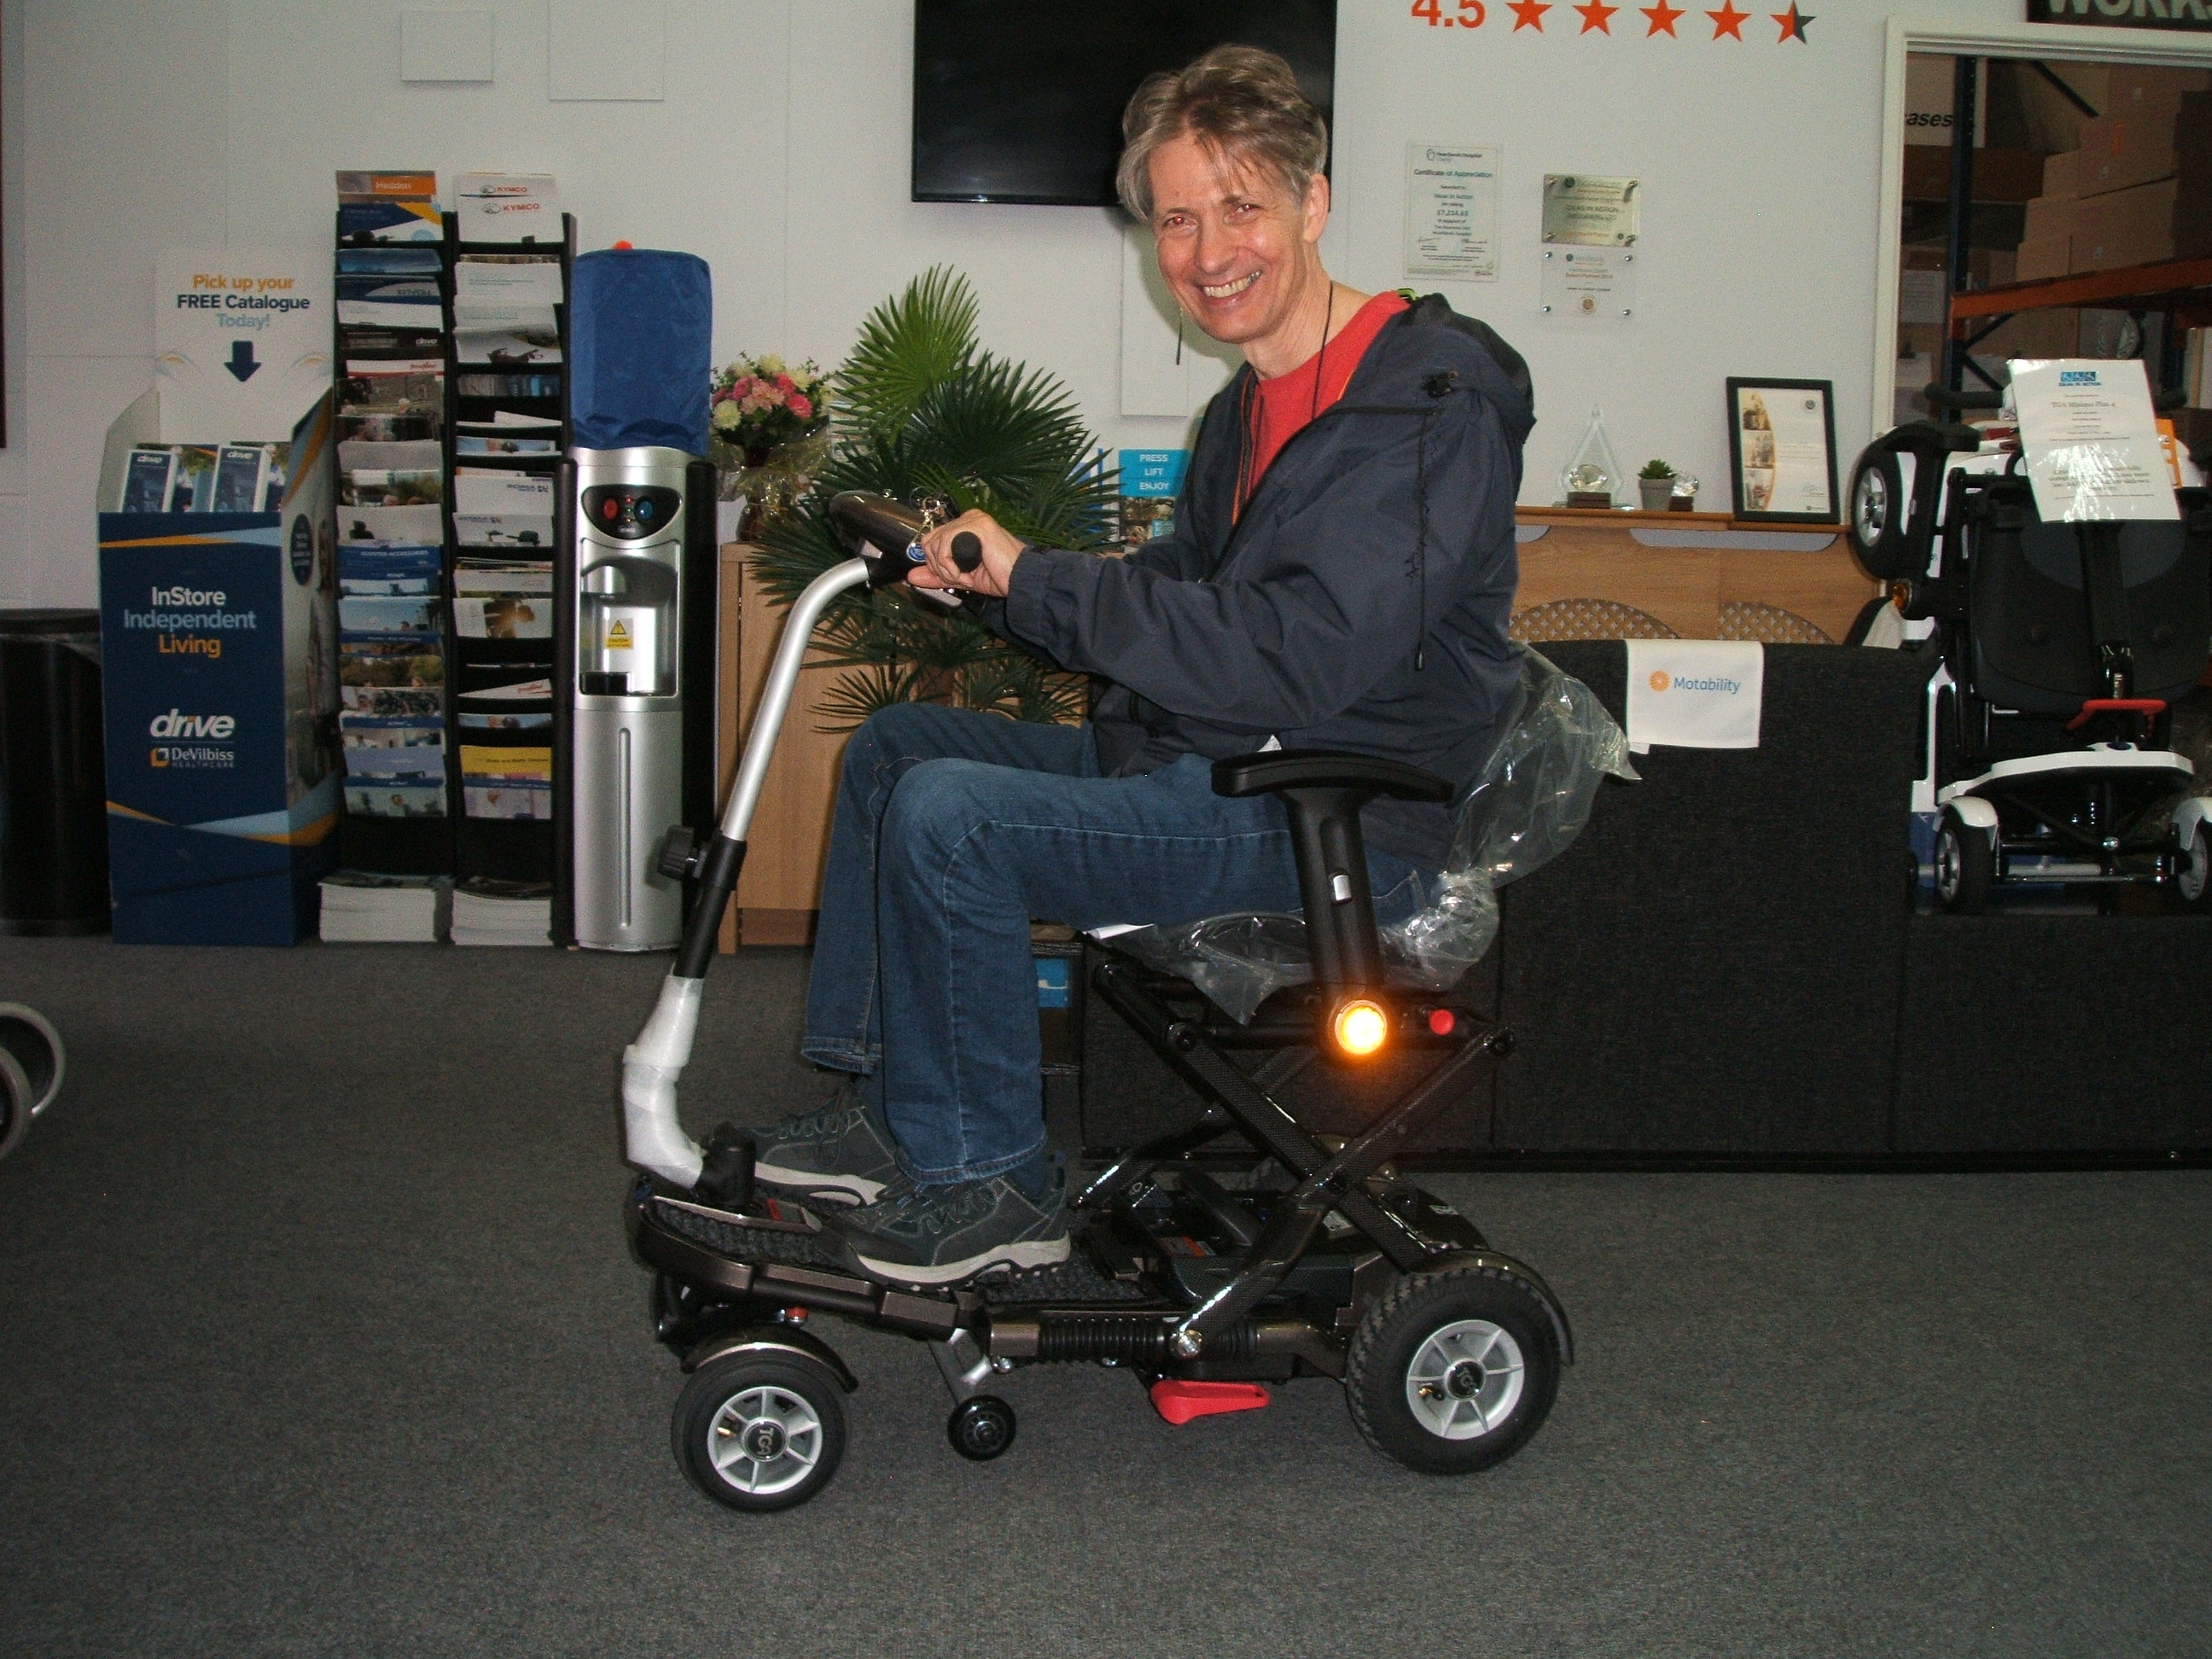 TGA Minimo plus 4 mobility scooter